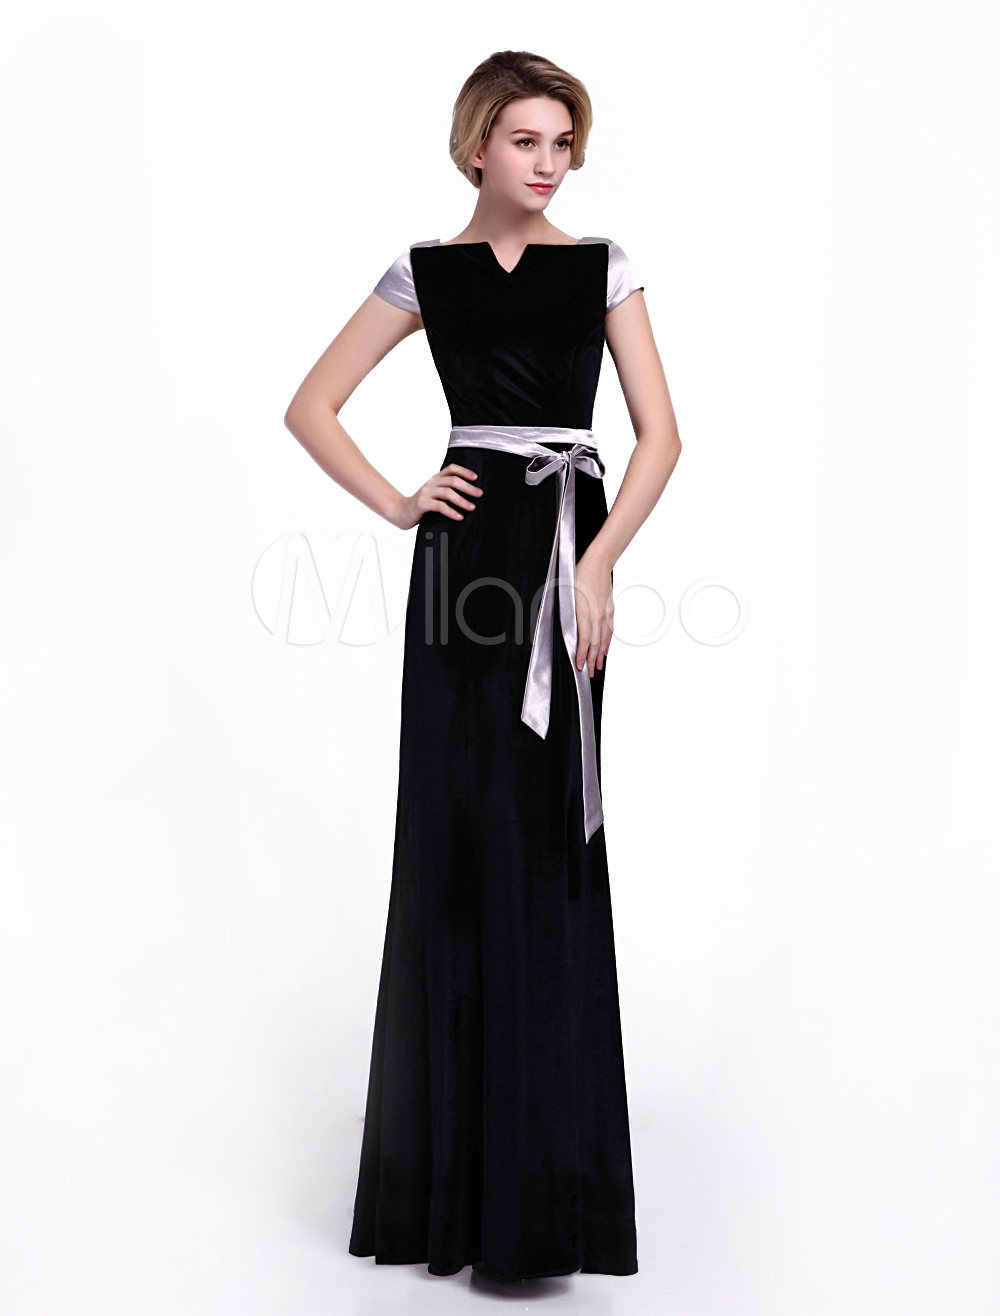 Black Bridal Mother Dress in A-line Notch Silhouette and Collar Knotted Short Sleeves Zipper Velvet Skirt Milanoo